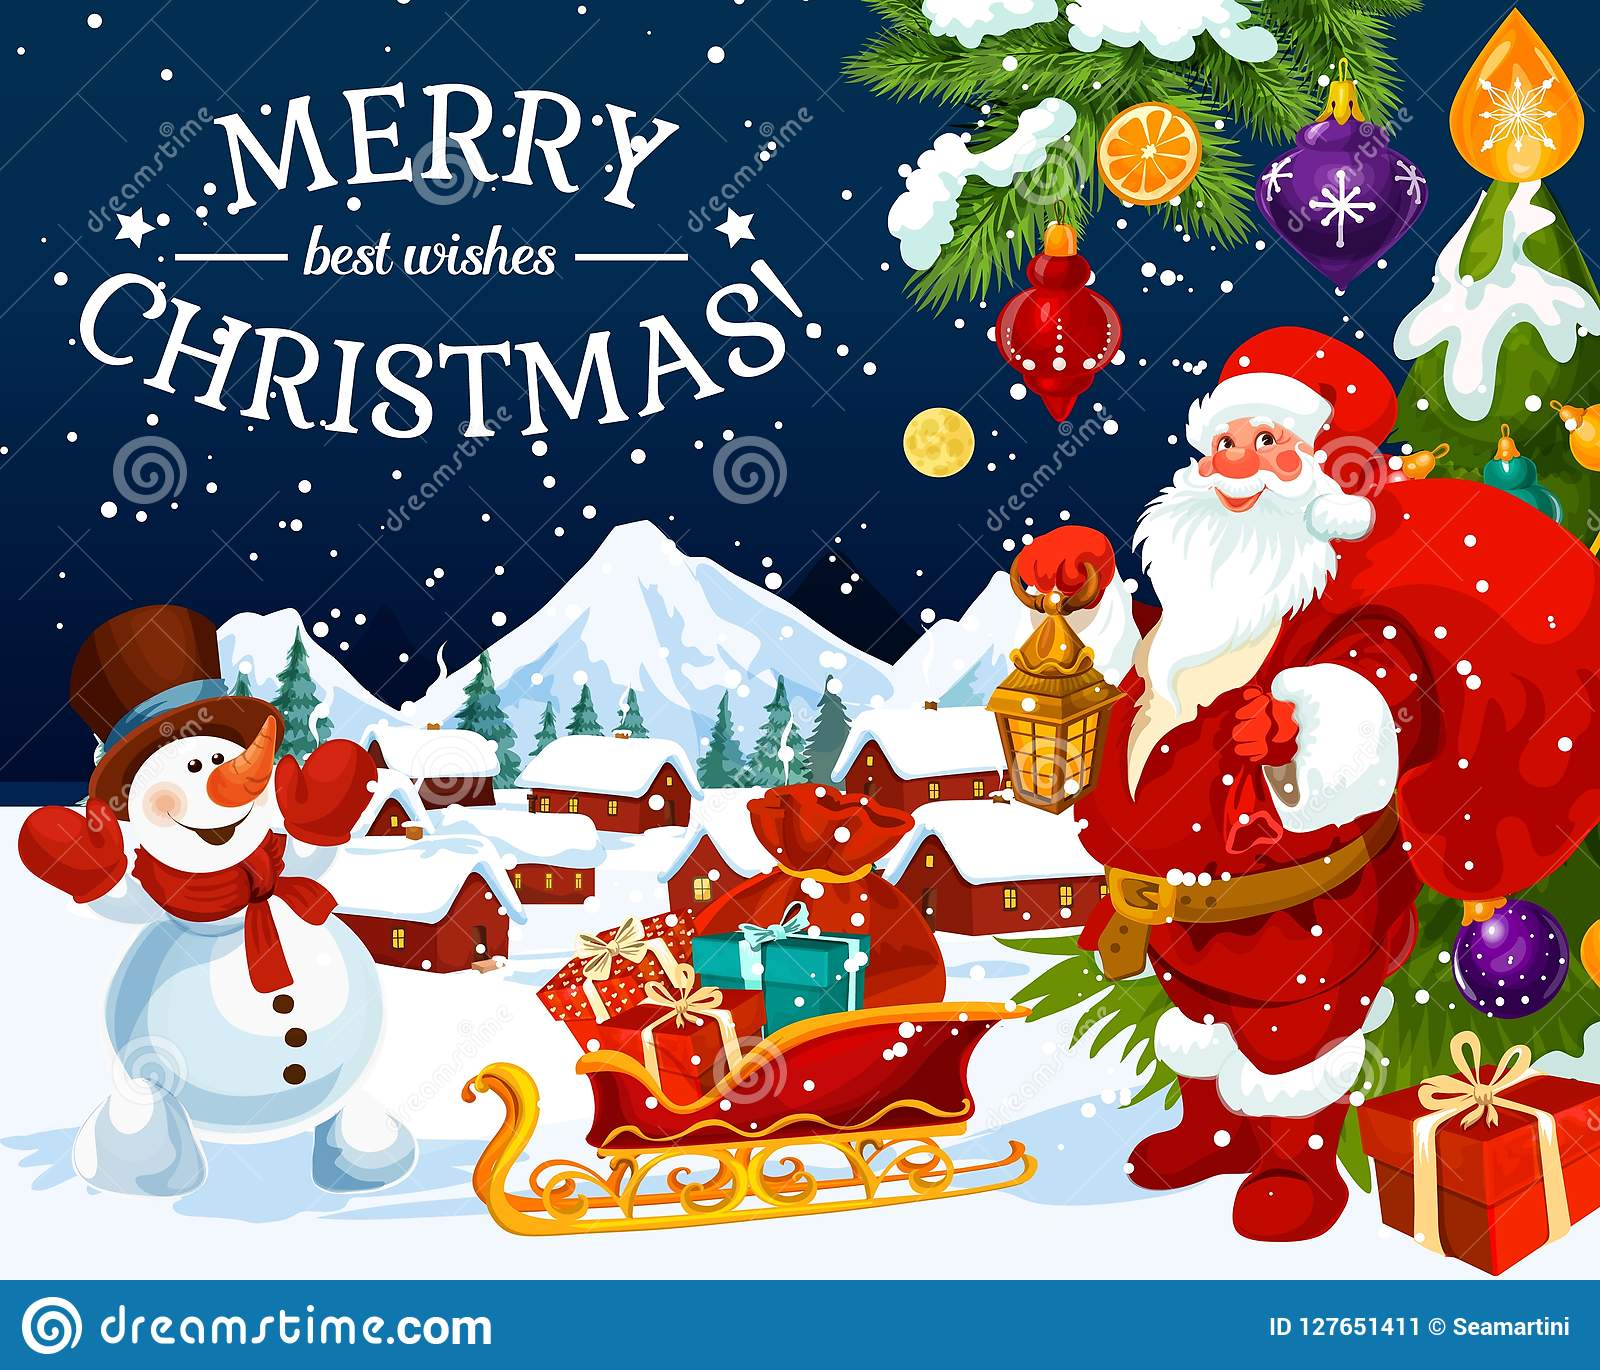 Christmas Holiday Santa And Snowman Greeting Card Stock Vector Illustration Of Night Background 127651411